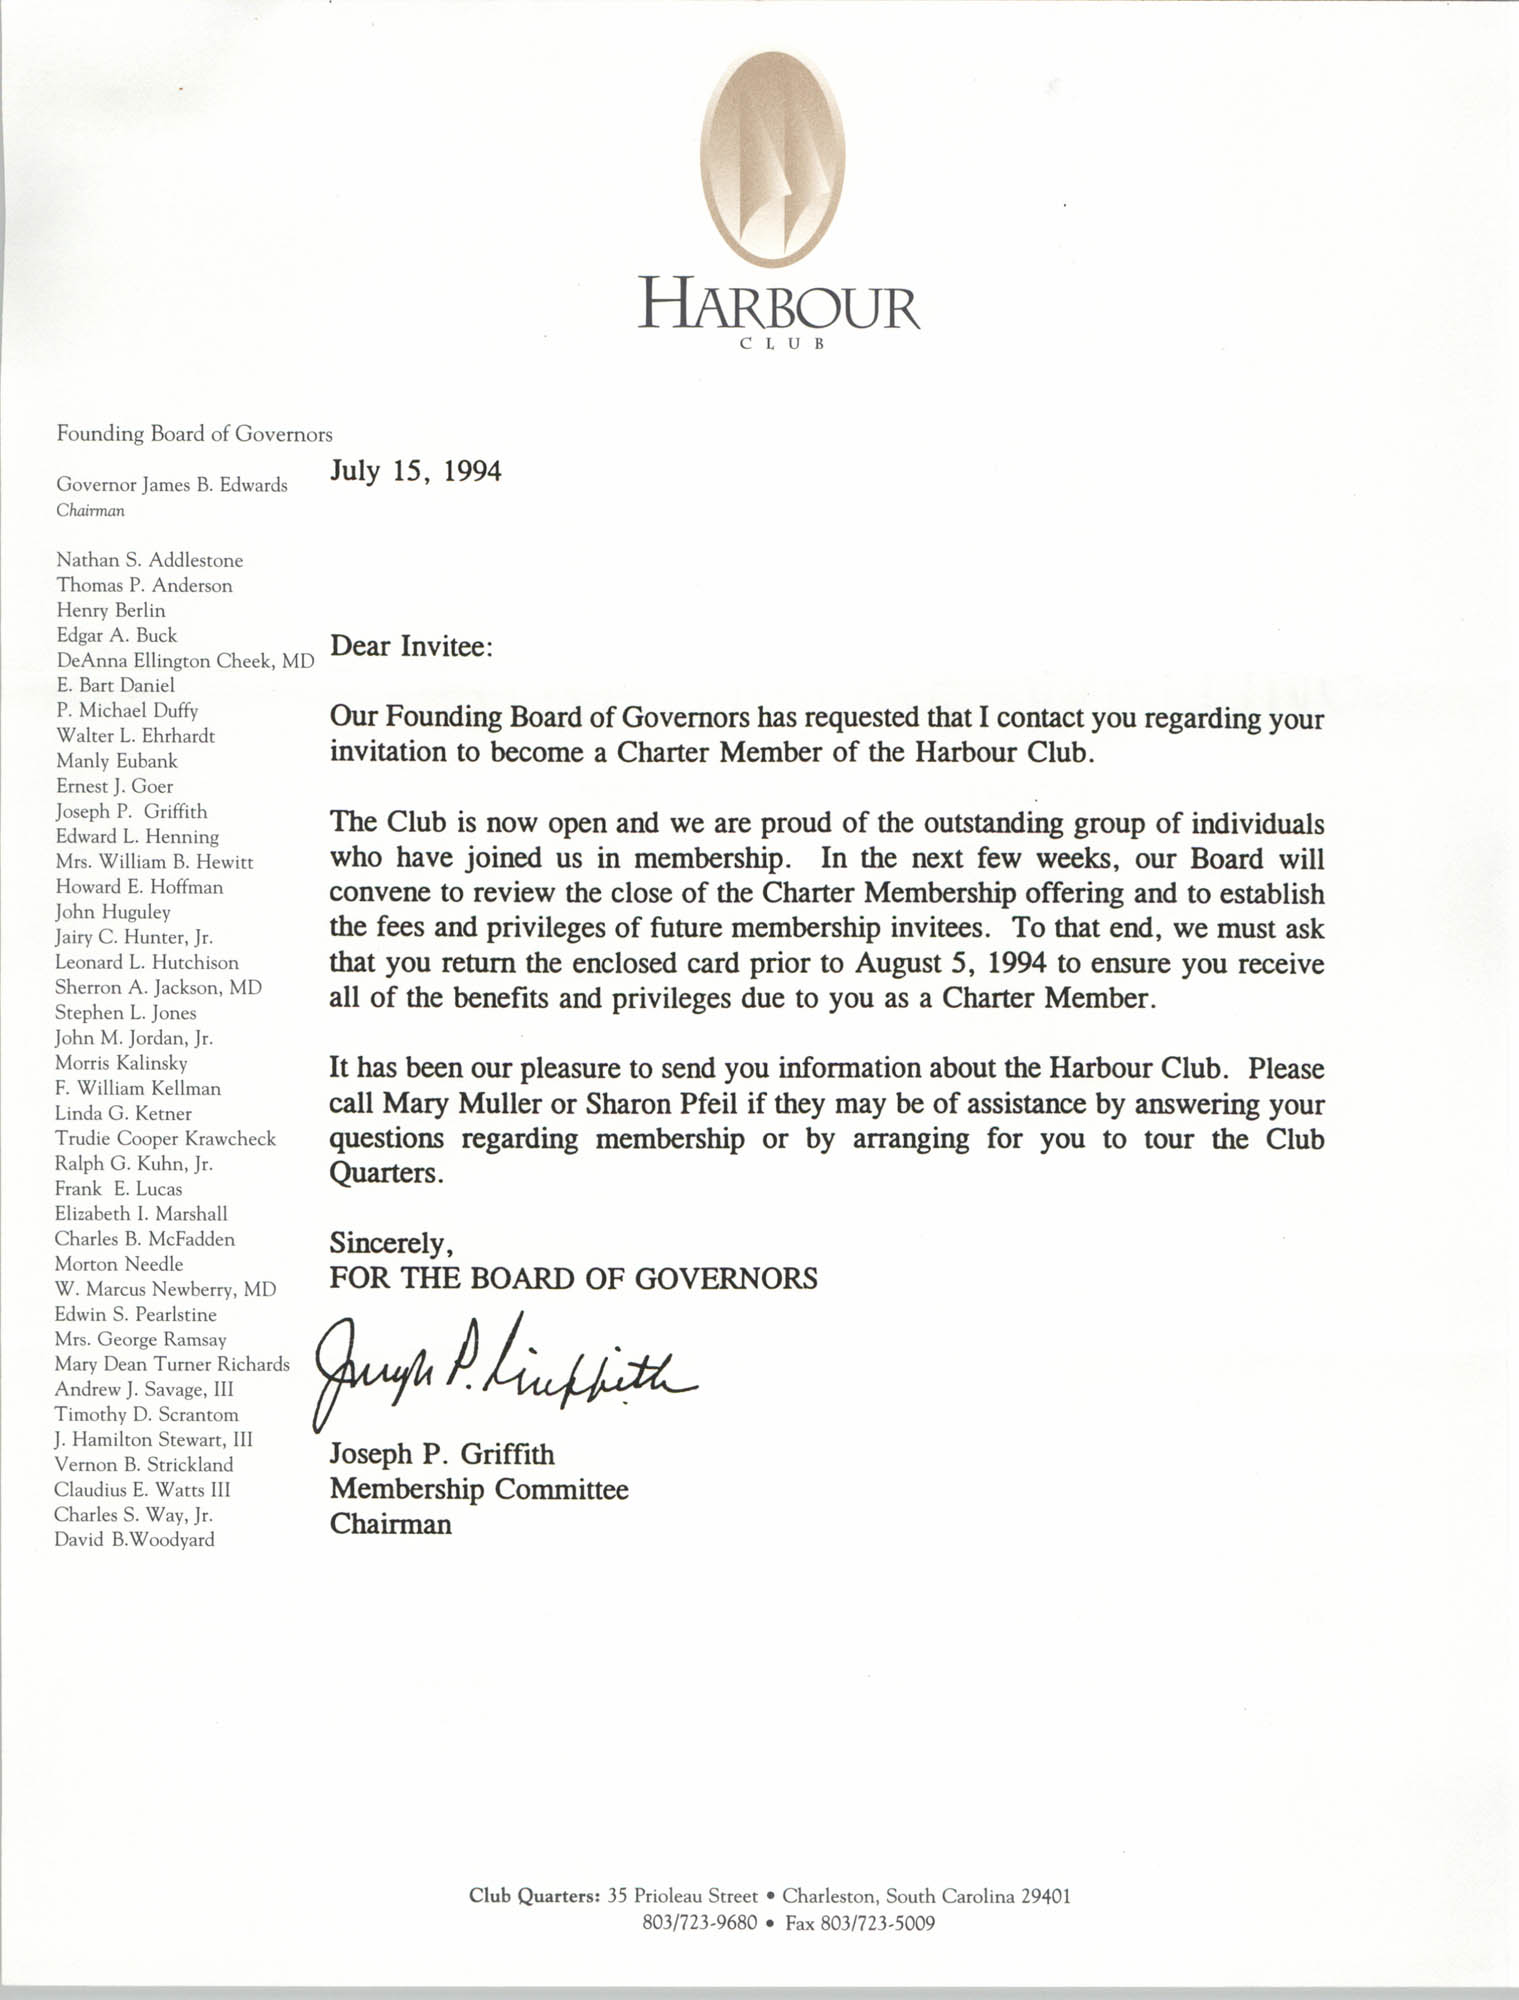 Letter from Joseph P. Griffith, July 15, 1994